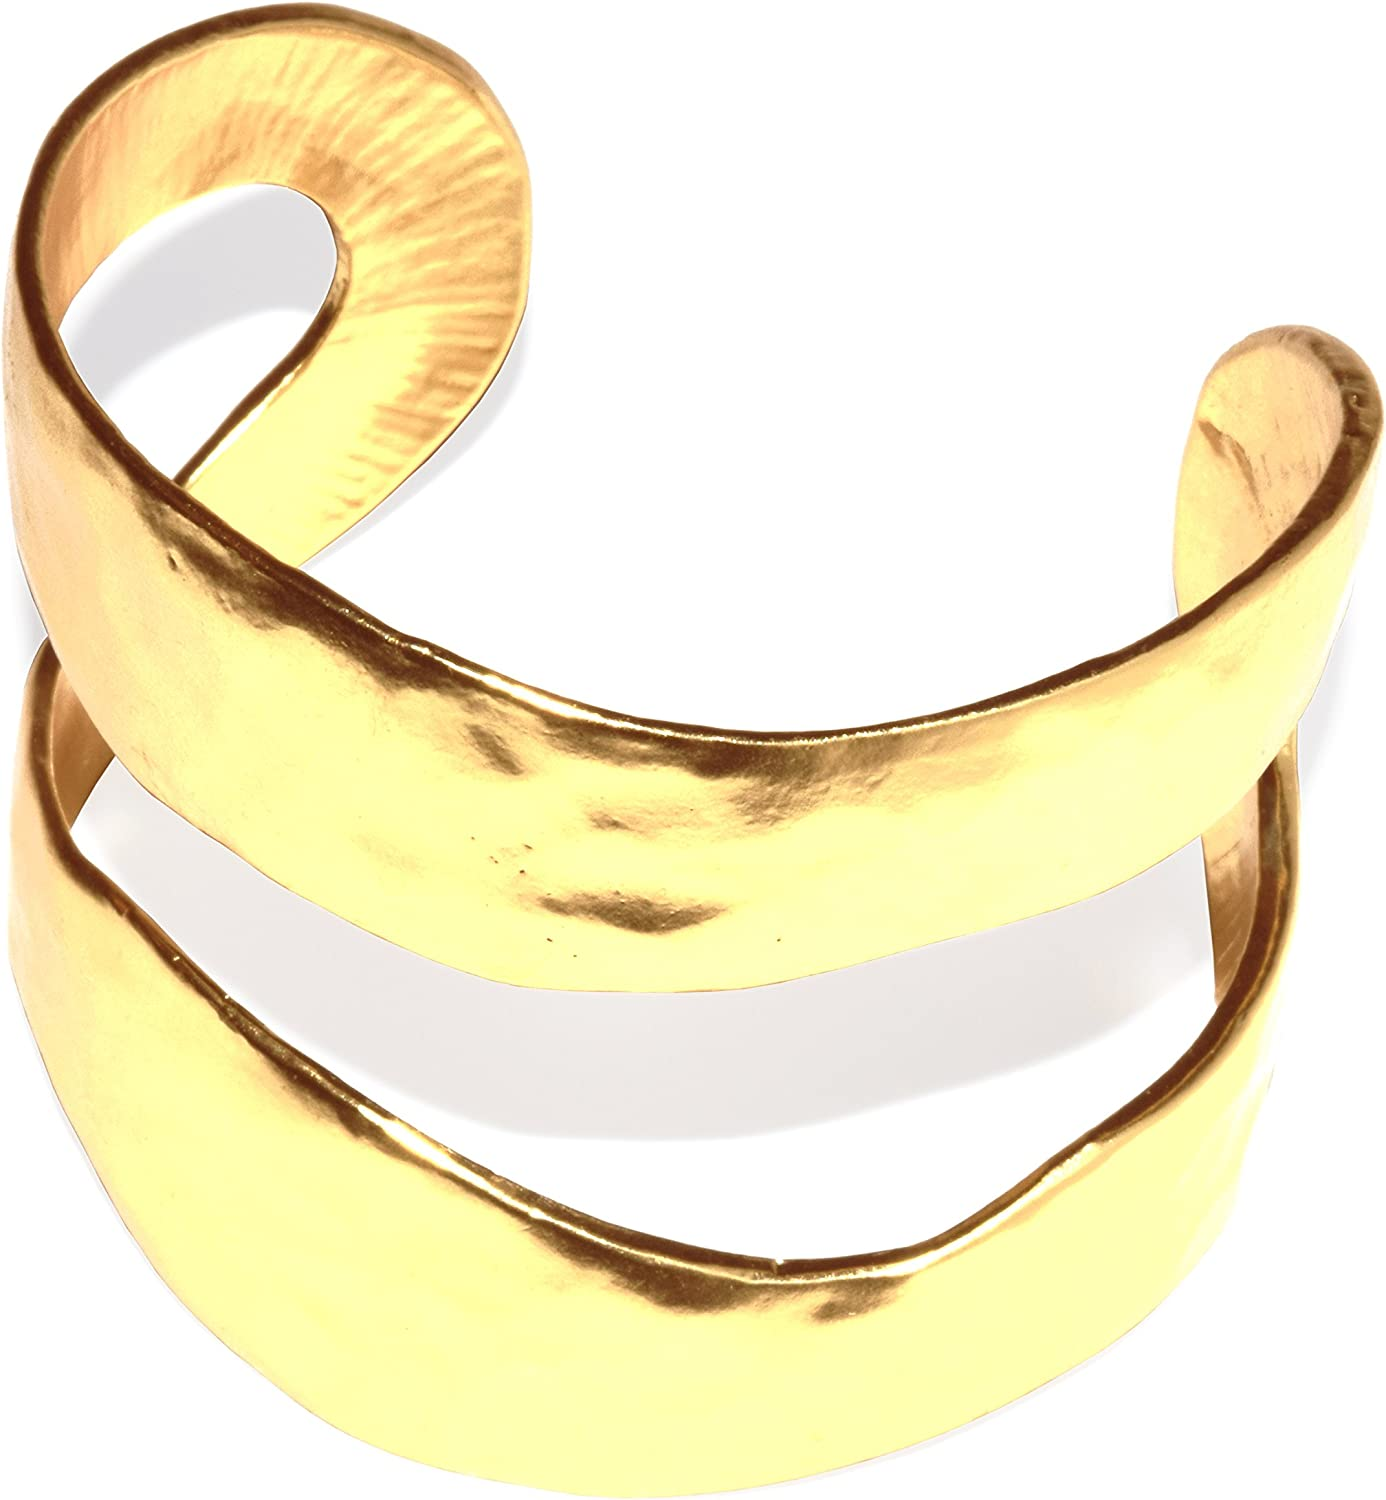 KARINE SULTAN Gold Cuff Bracelet | Wide, Textured, Smooth Open Design and Classy, Stylish Celebrity Look | 24kt Gold Plated Adjustable Cuff Bracelet